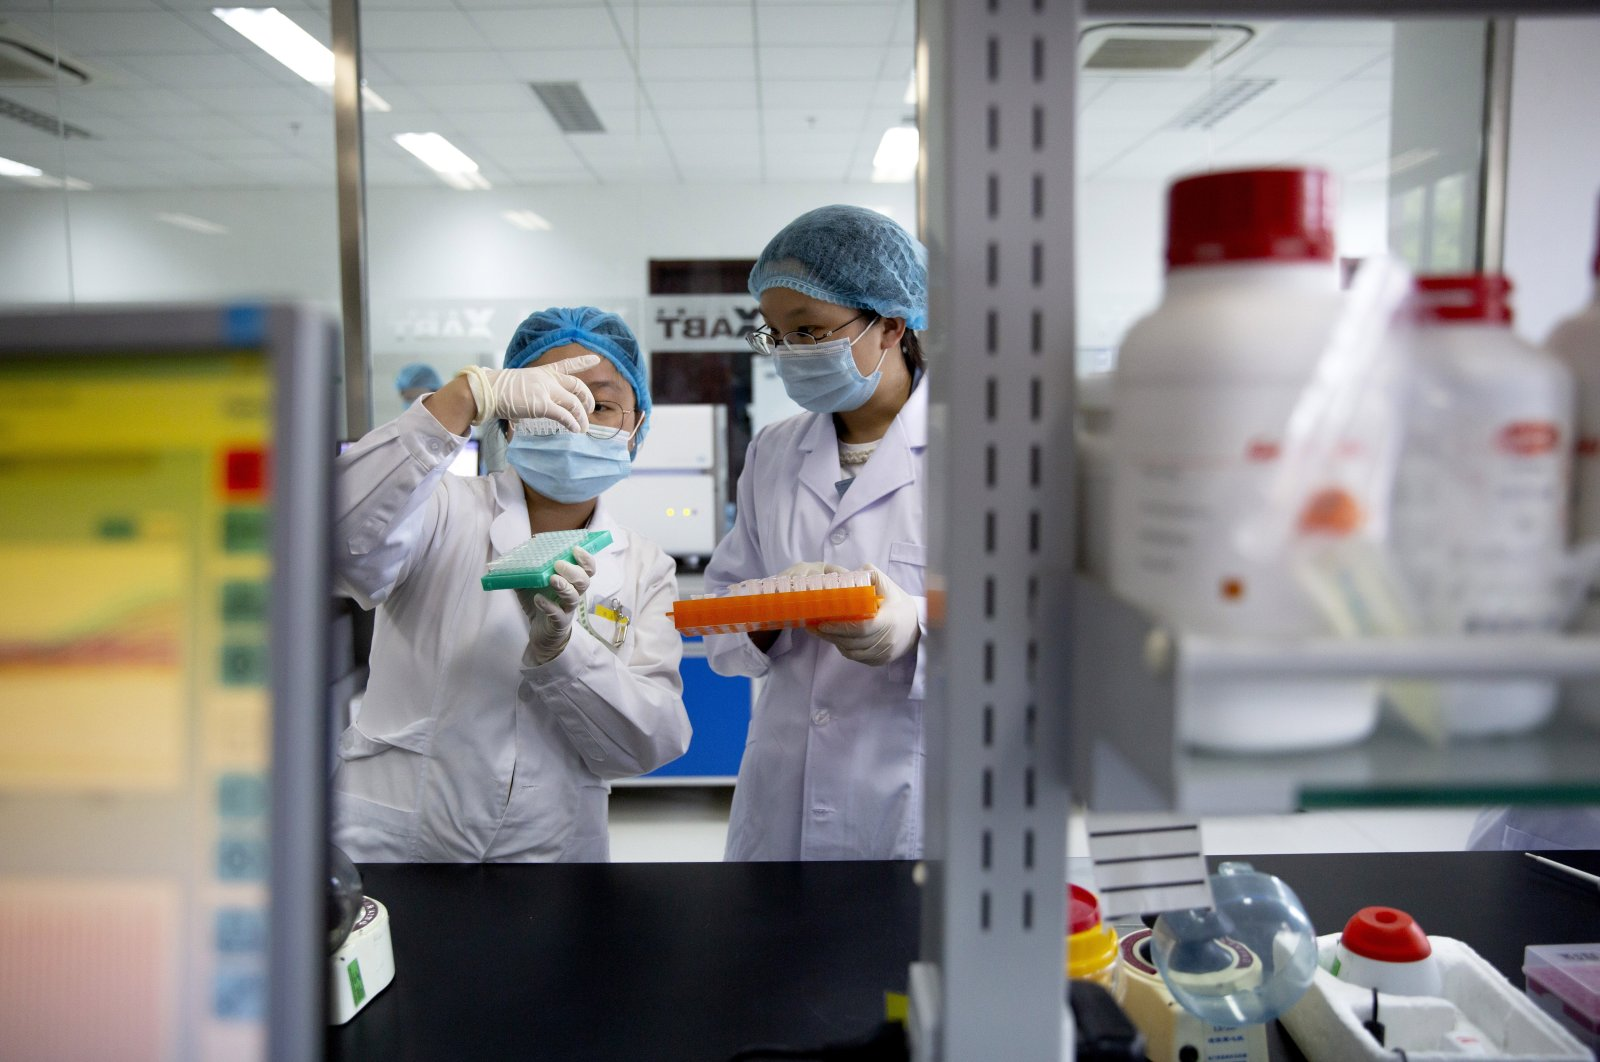 Employees work in a research and development lab of Beijing Applied Biological Technologies, a firm which is developing COVID-19 molecular diagnostic test kits, during a government-organized tour for journalists in Beijing, China, May 14, 2020. (AP Photo)